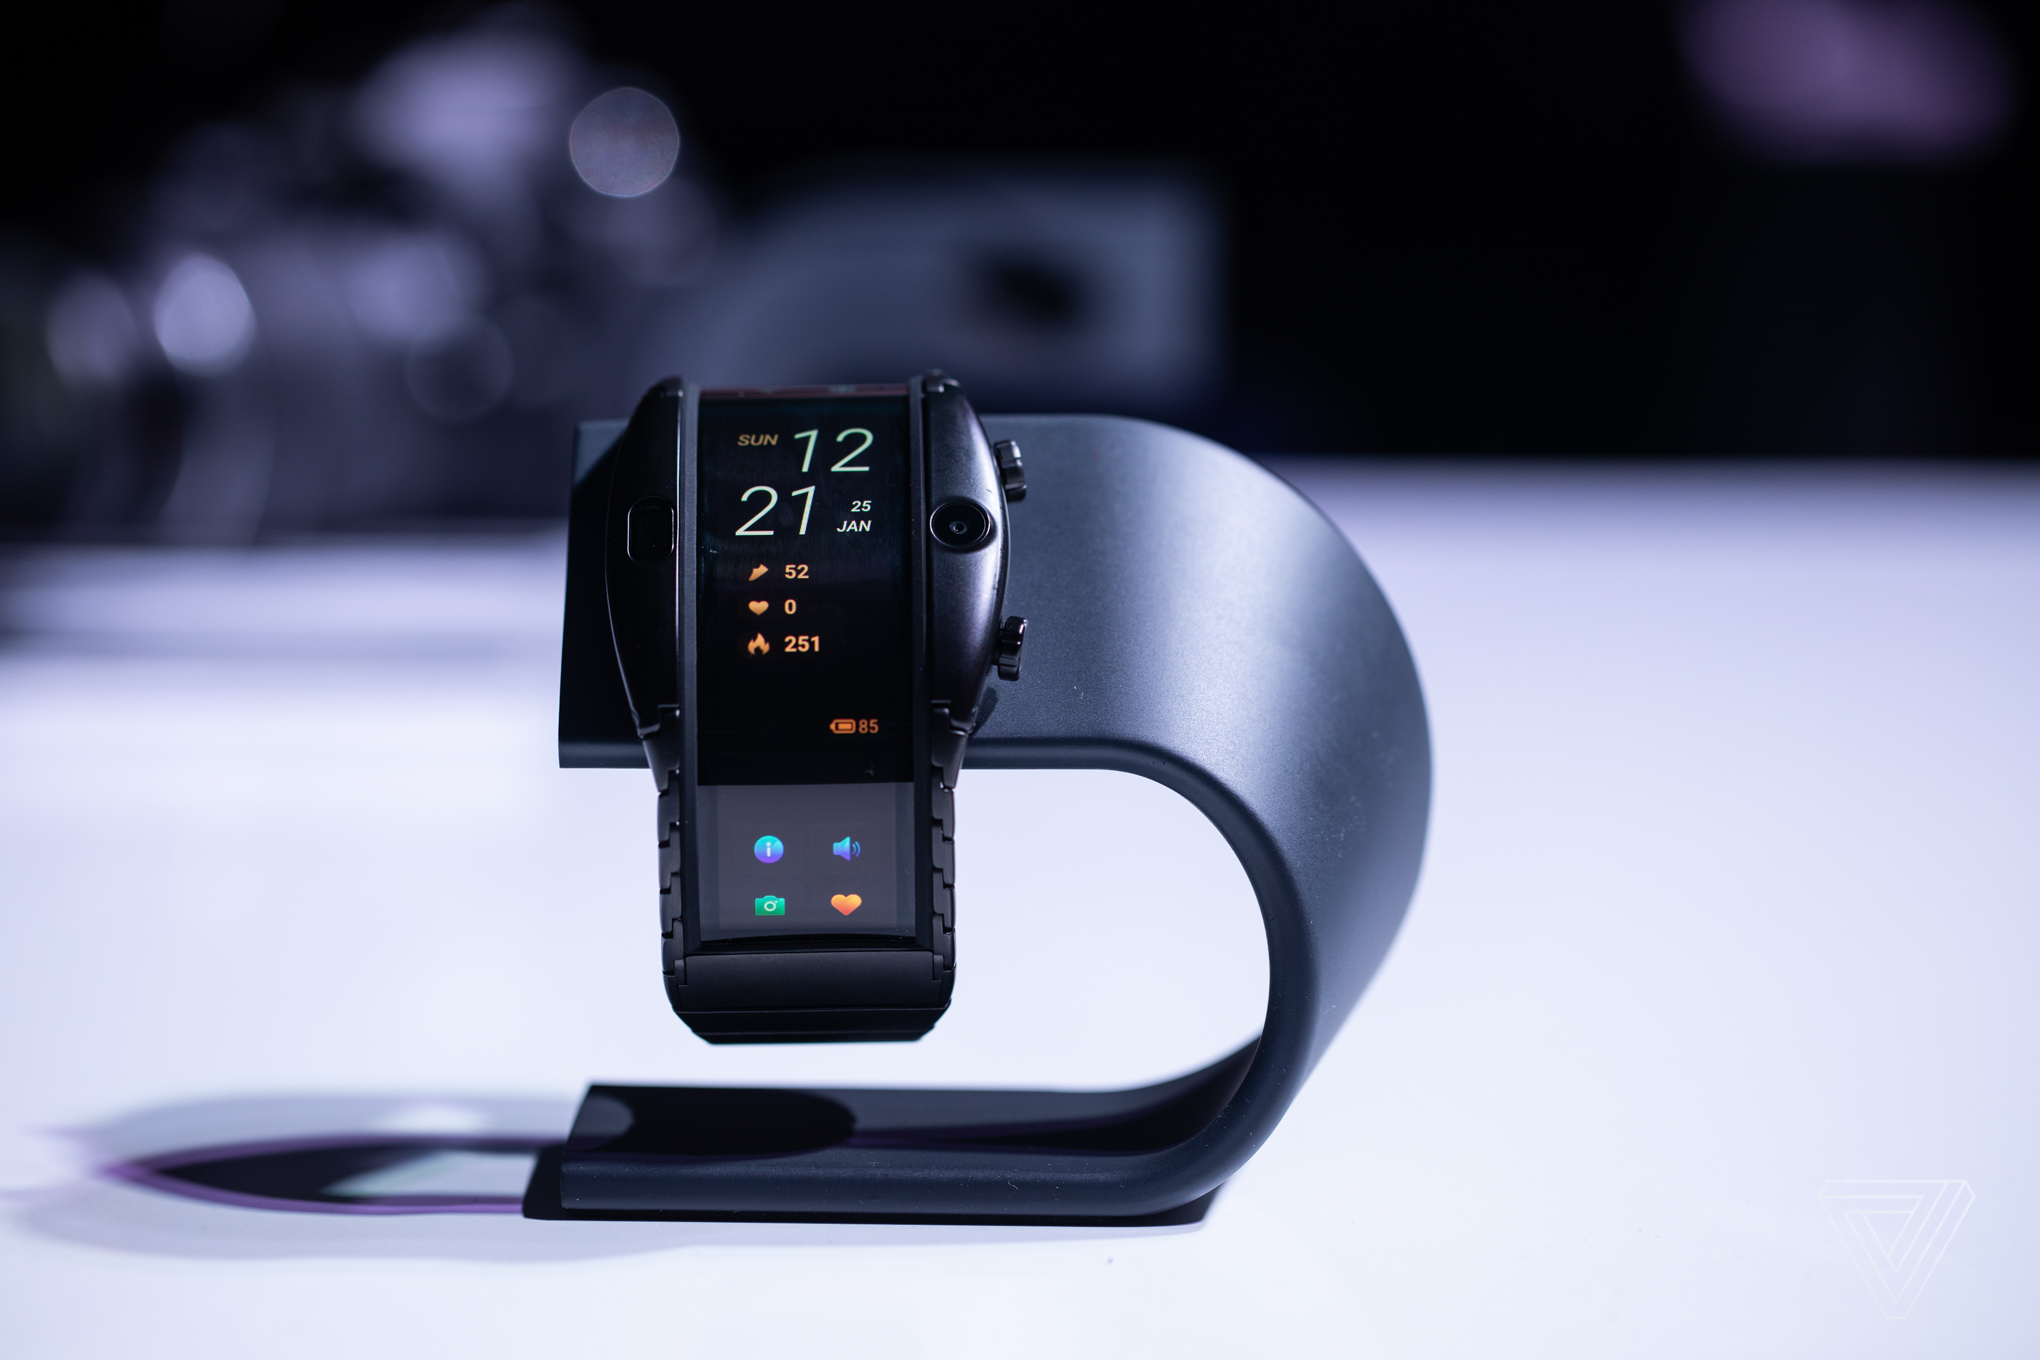 Nubia's new wearable puts a 4-inch flexible smartphone on your wrist